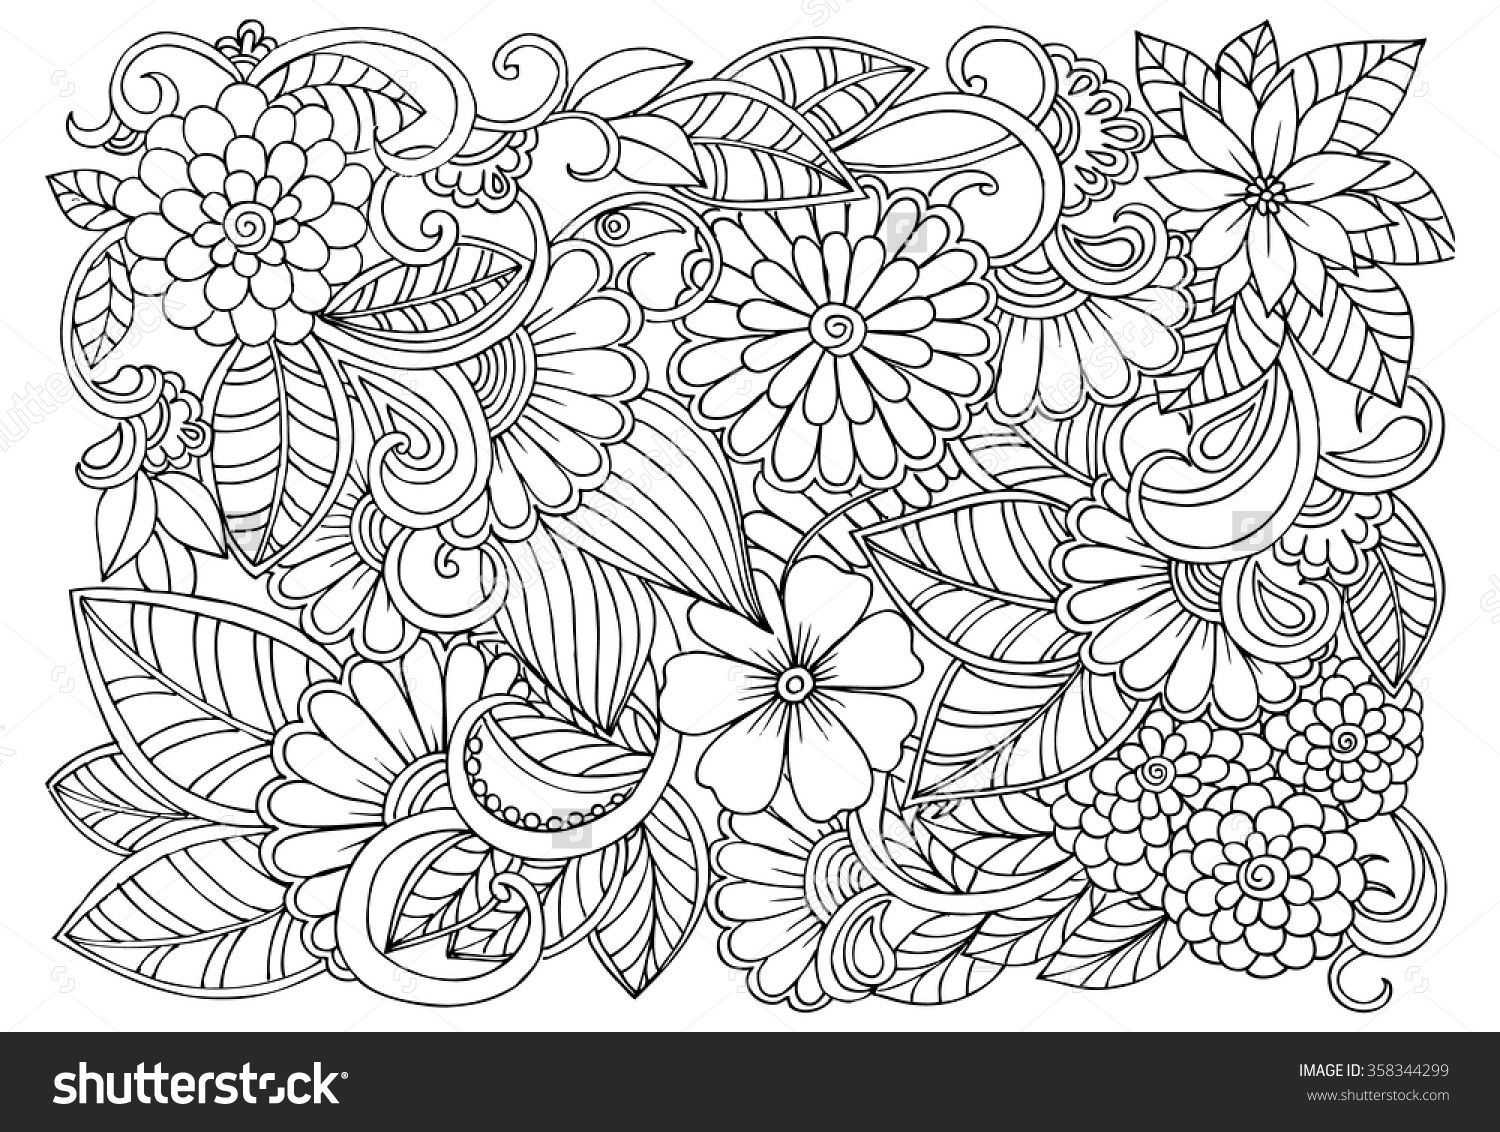 flower patterns to color coloring pages of flower designs with flower designs flower color to patterns